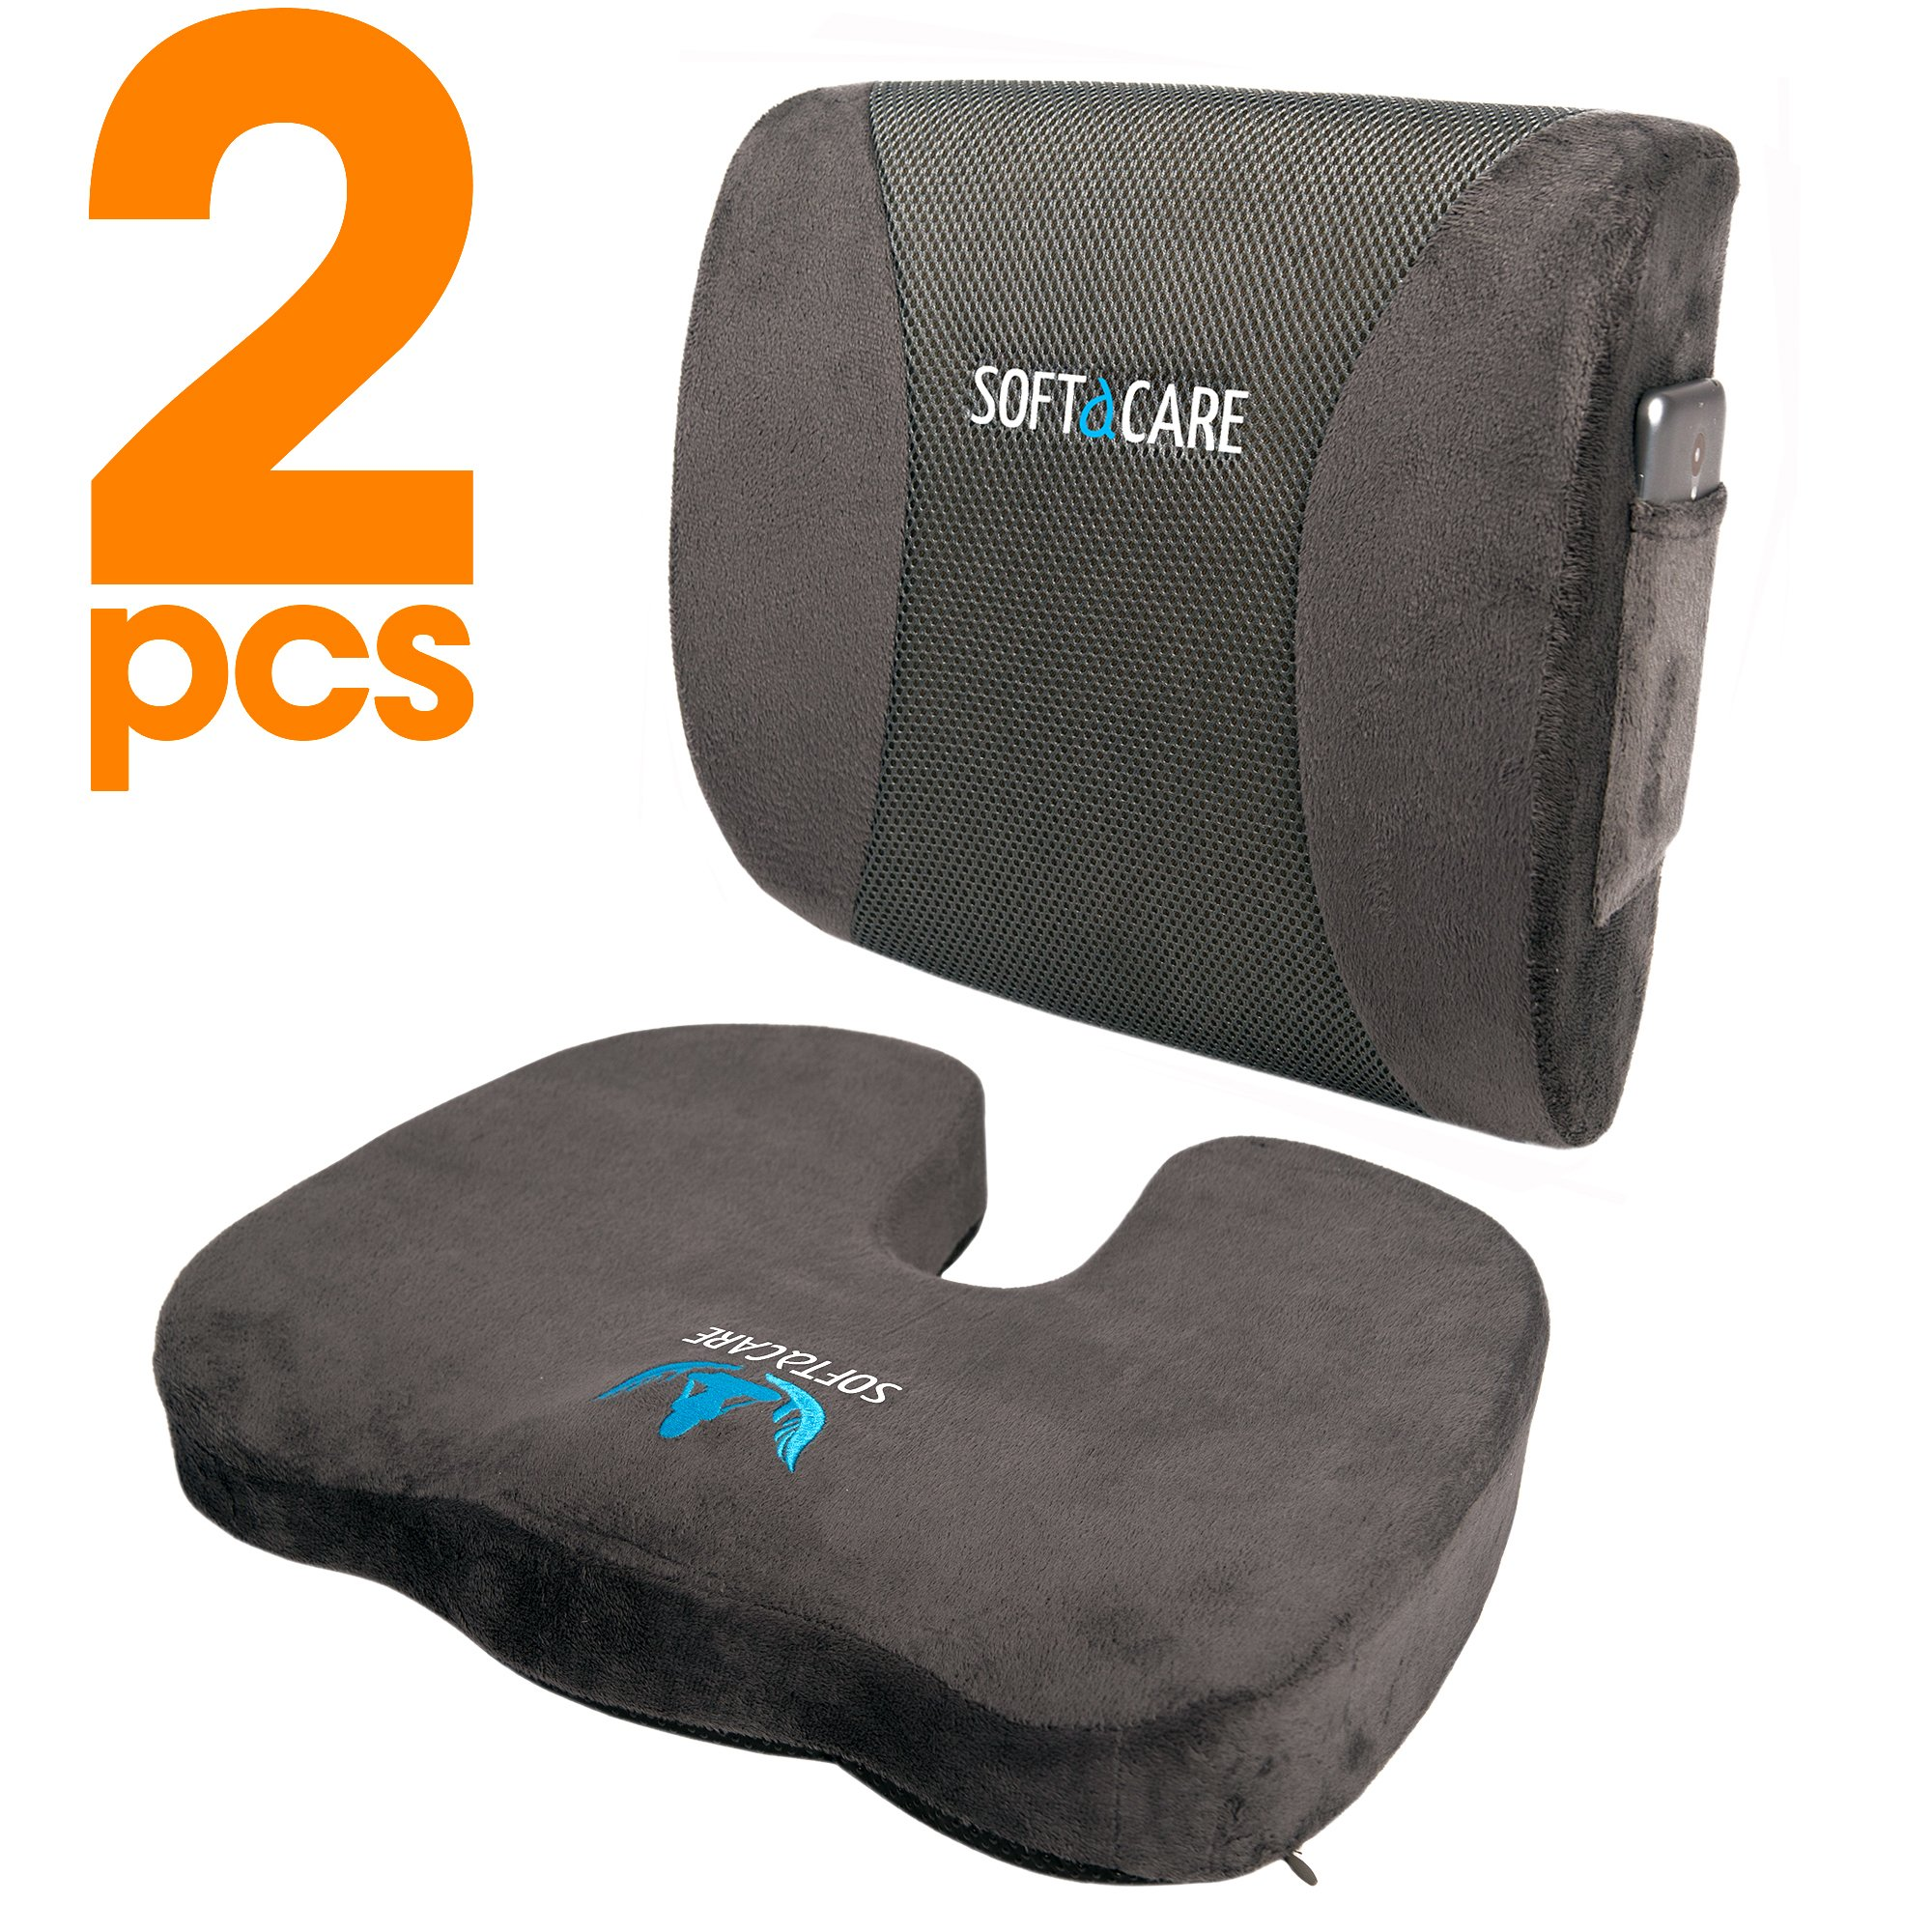 Details About Softacare Seat Cushion Coccyx Orthopedic Memory Foam And Lumbar Support Pillow